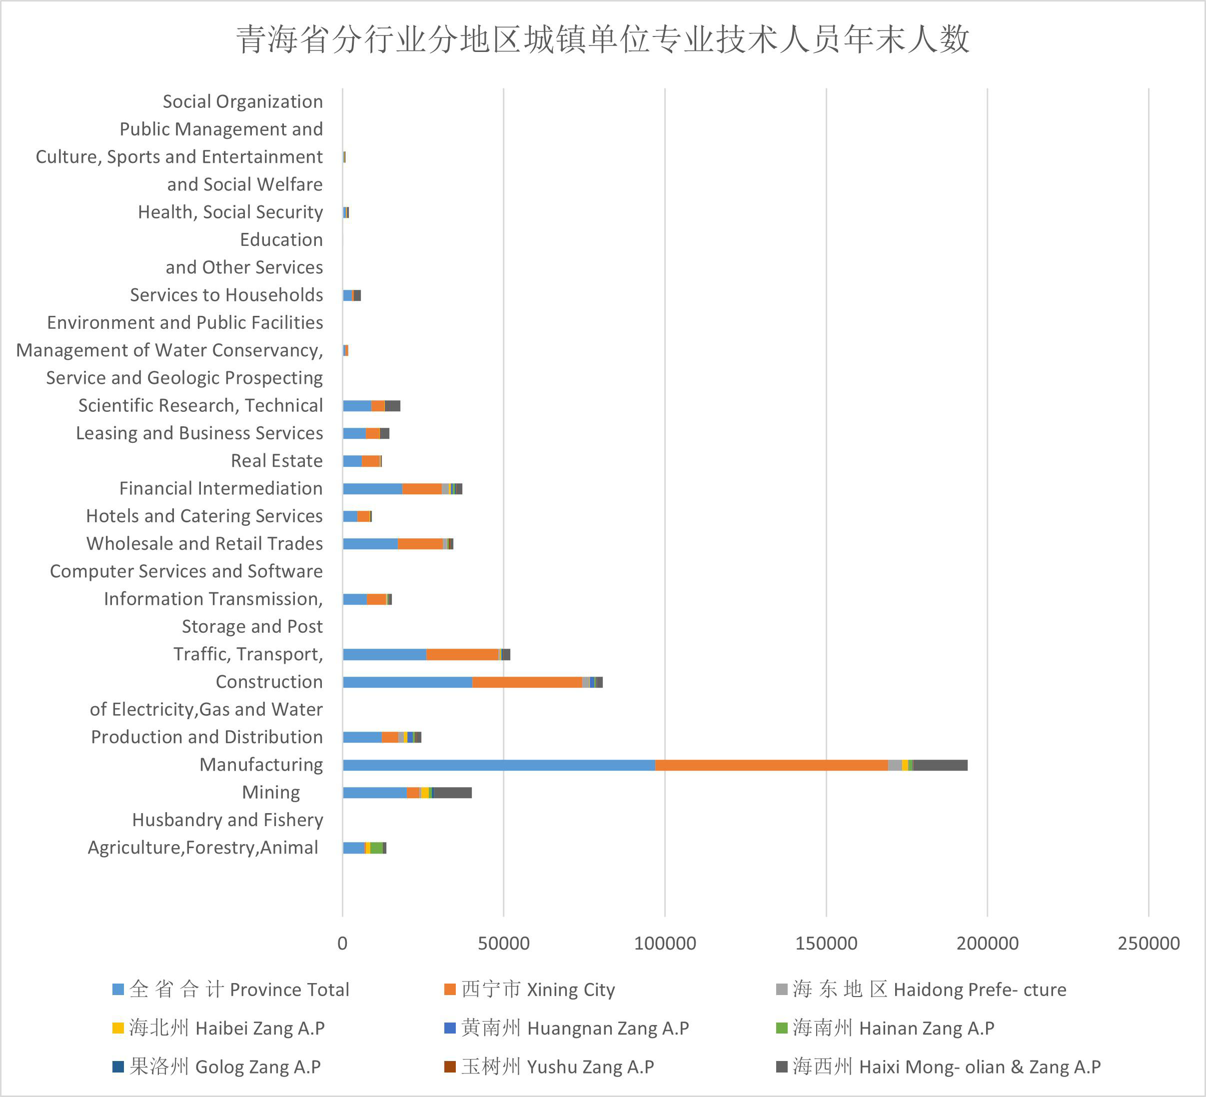 Year end number of professional and technical personnel in urban units by industry and region in Qinghai Province (2006-2008)